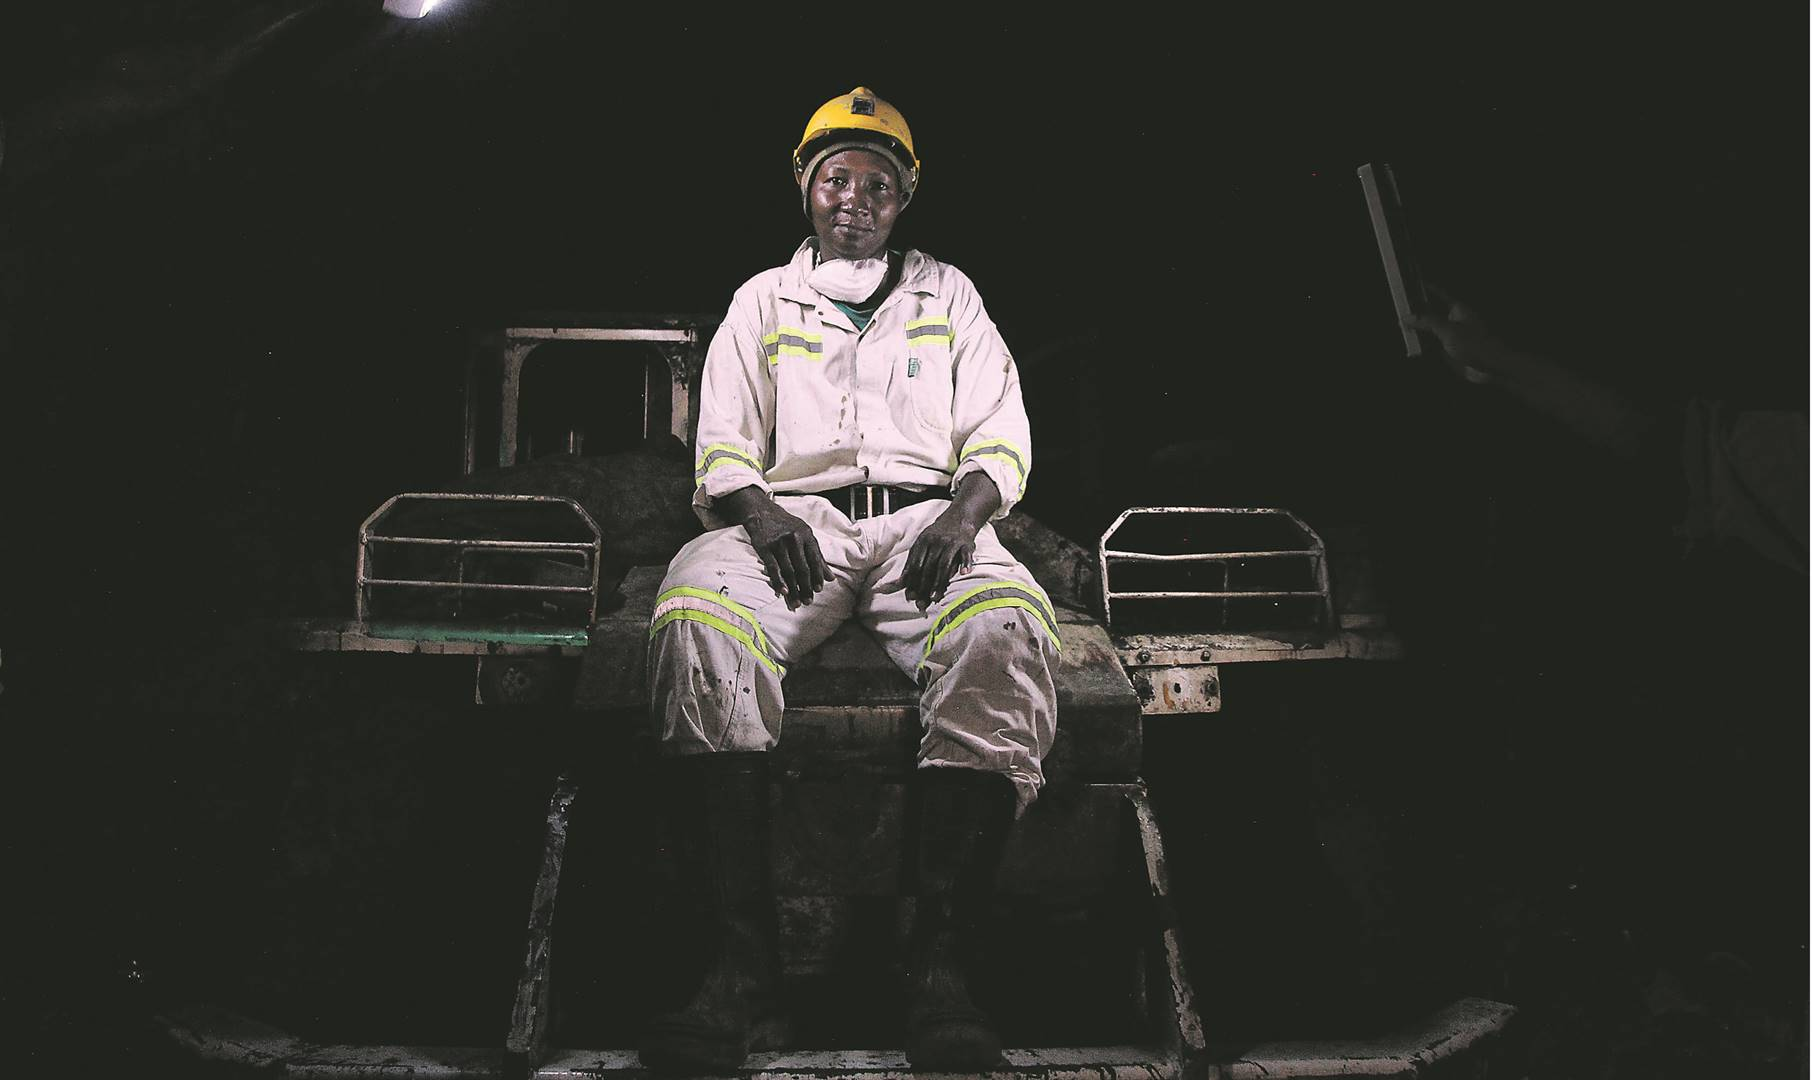 Lucky Bothma is one of the members of the team that has been trying to get to the office container that's buried in the dark and dangerous dark and dangerous underground at Lily Mine. Rosetta Msimango